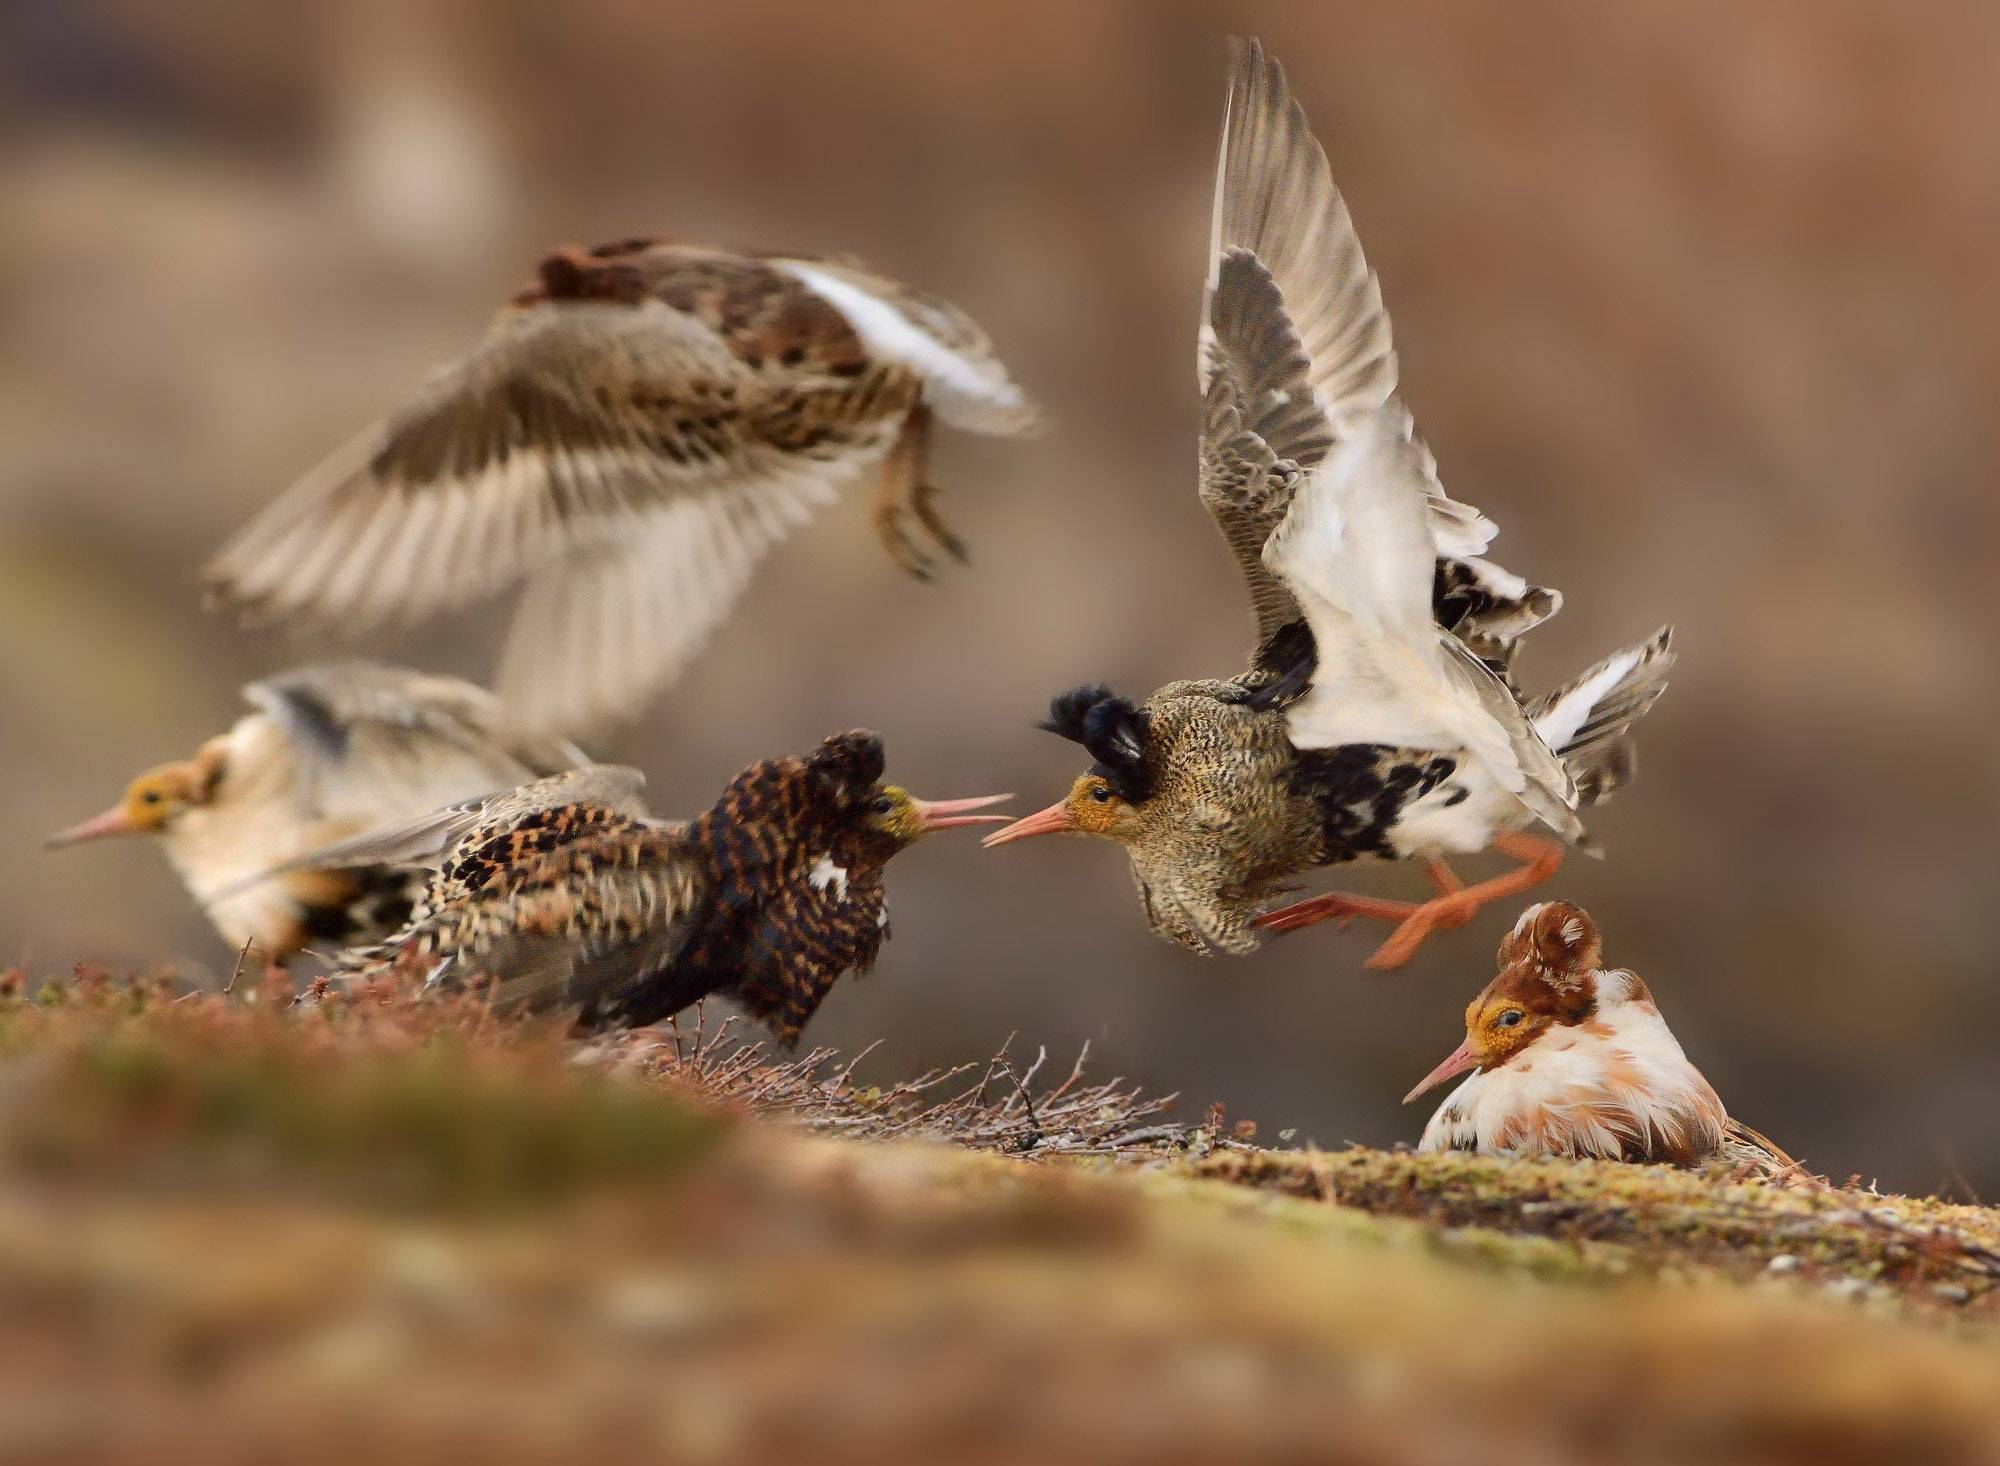 Canadian physician wins Wildlife Photographer of the Year 2015